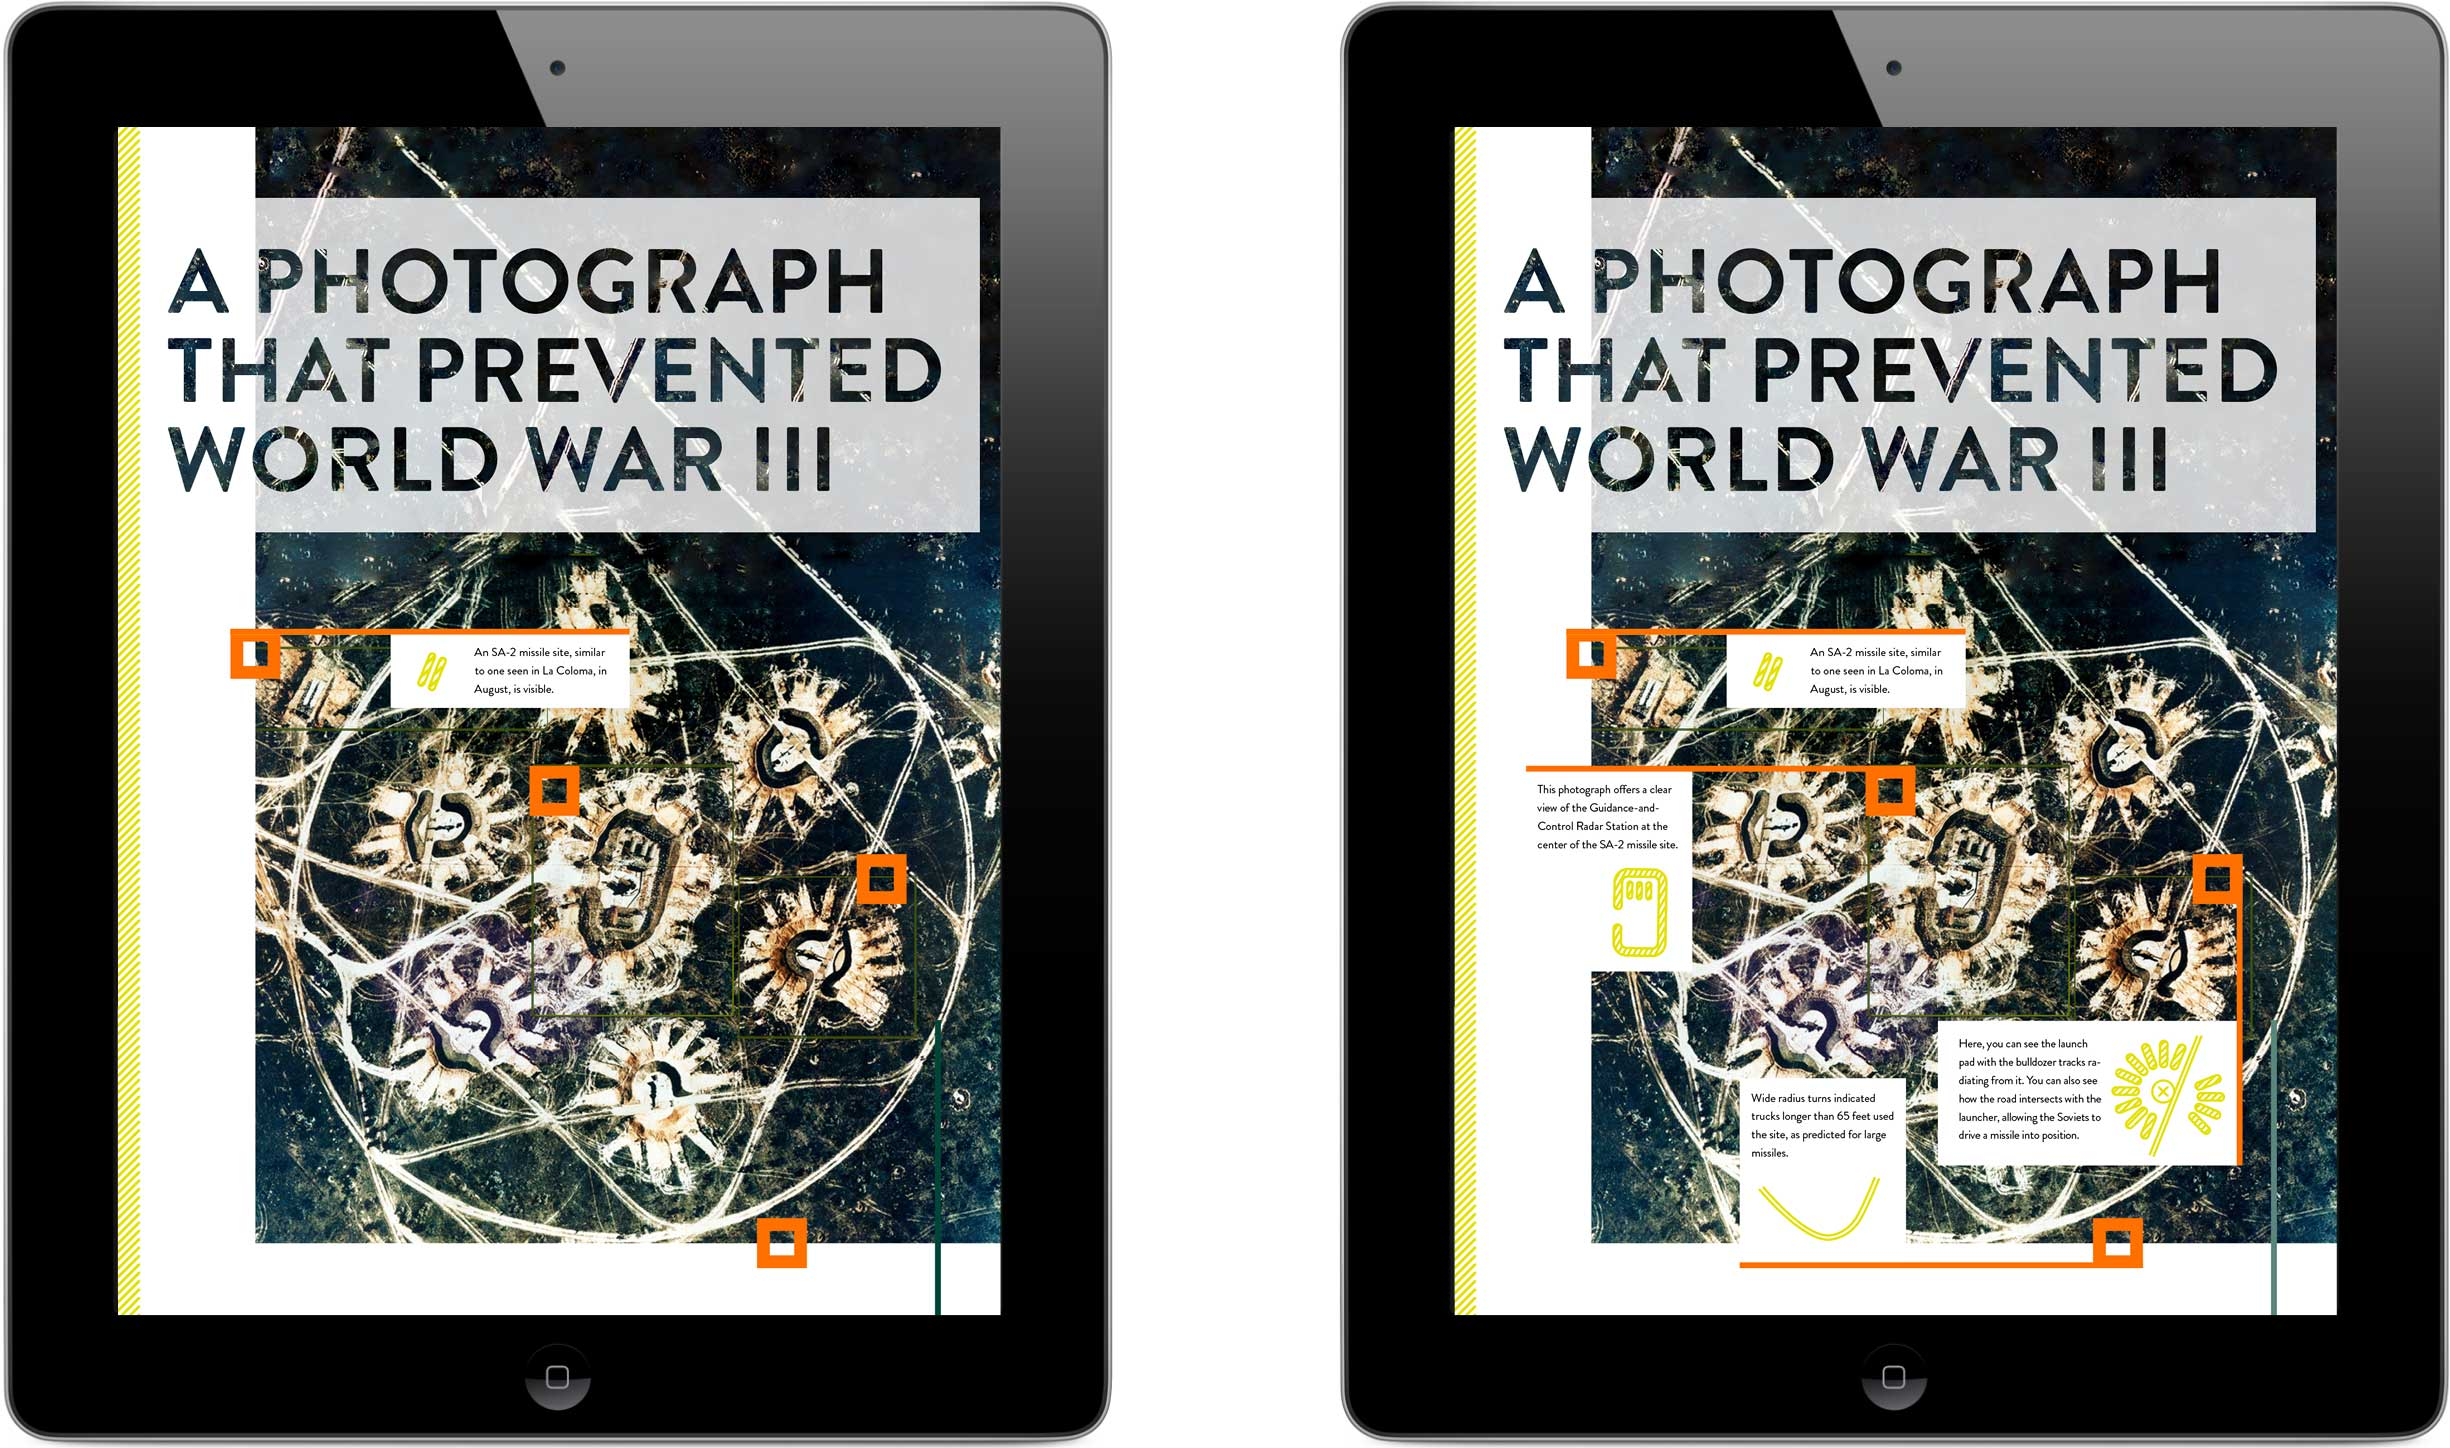 A photograph purported to have prevented World War III introduces an article, the name of which it inspired.